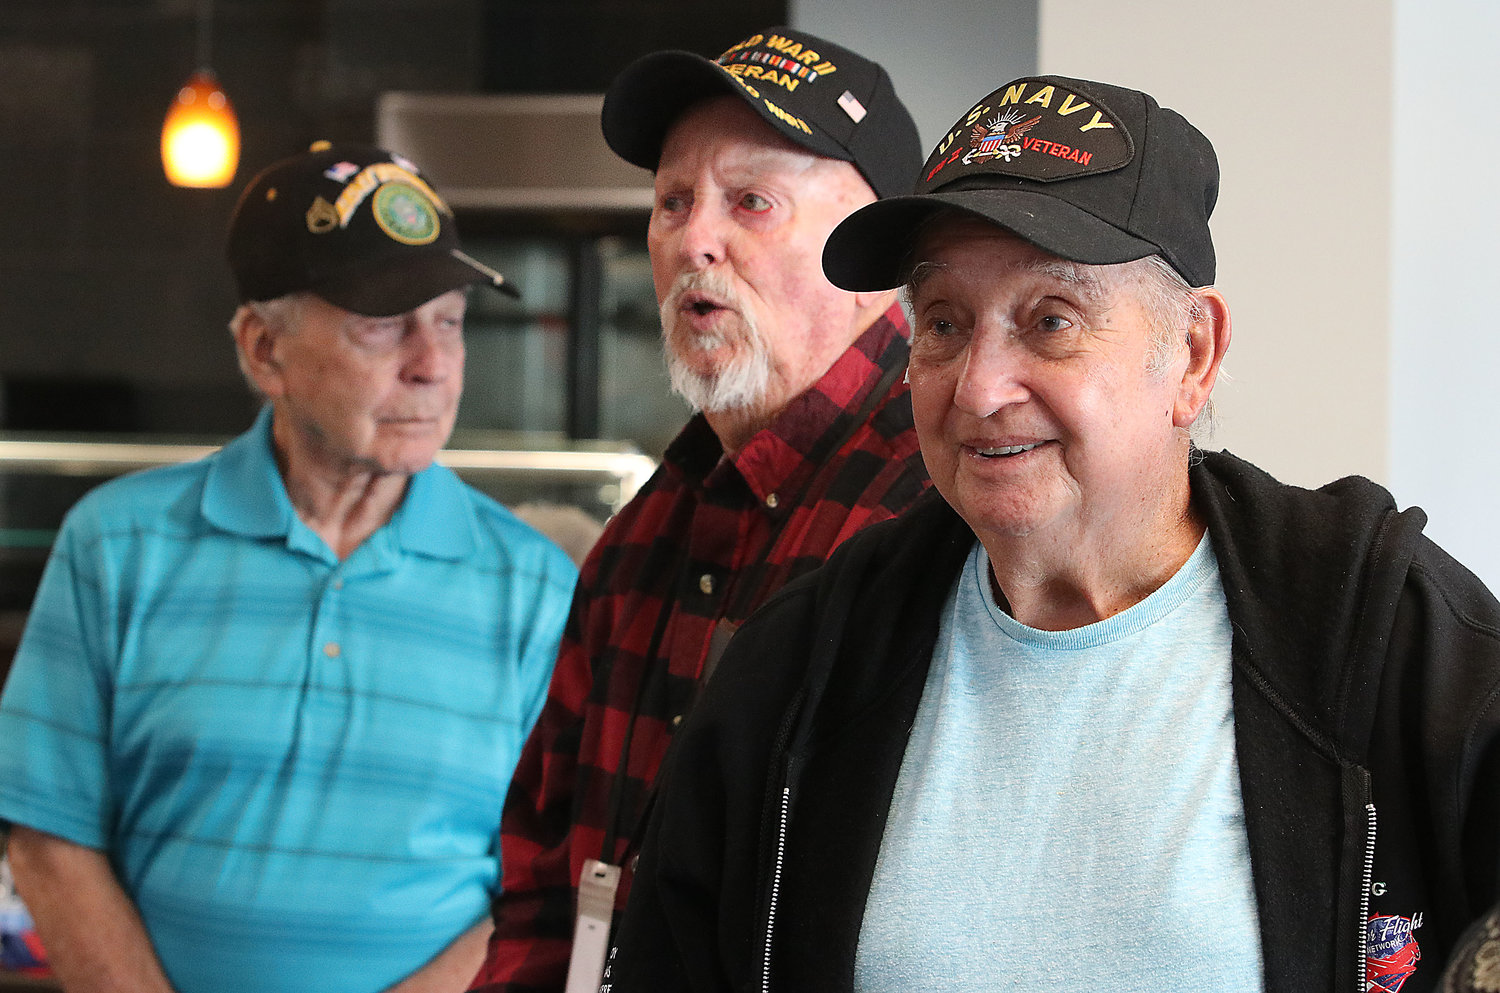 Vietnam veteran Tom Roy (left), WW II veterans Ernie Anderson (middle) and Guy Armillotto stand up during the playing of the Armed Forces Medley.